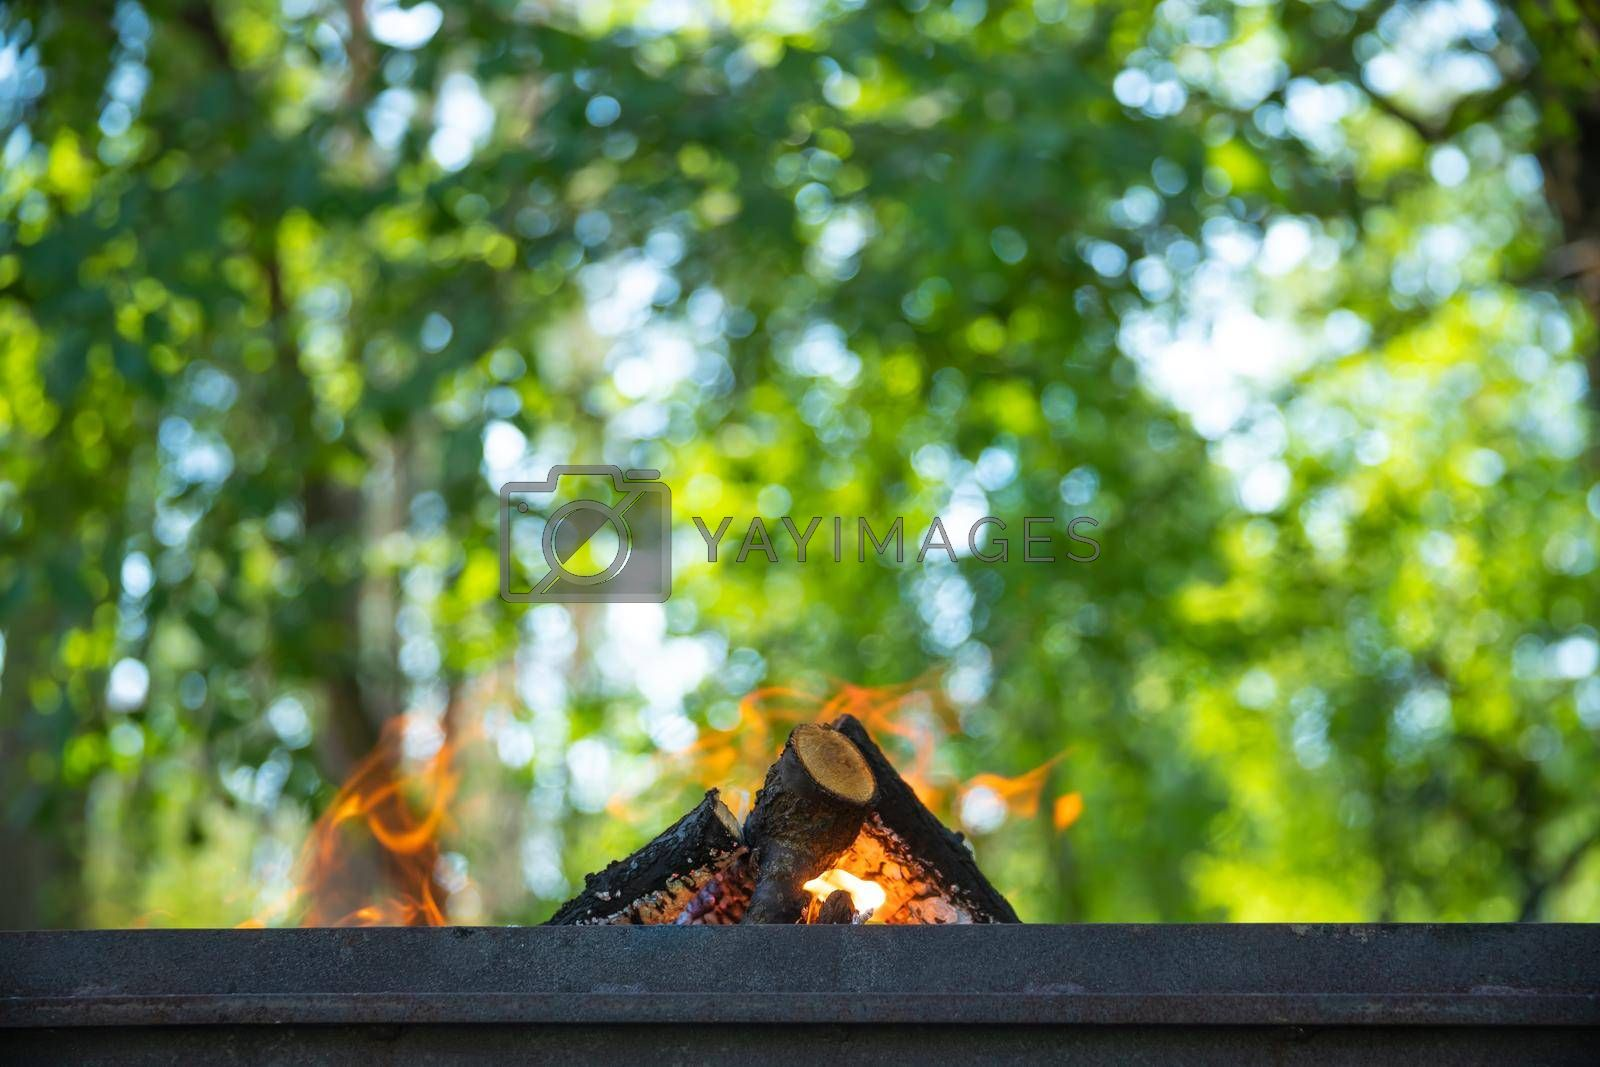 Closeup Photo of Campfire over Fresh Green Foliage Background in the Forest. Active Leisure Time Weekend Outdoors.